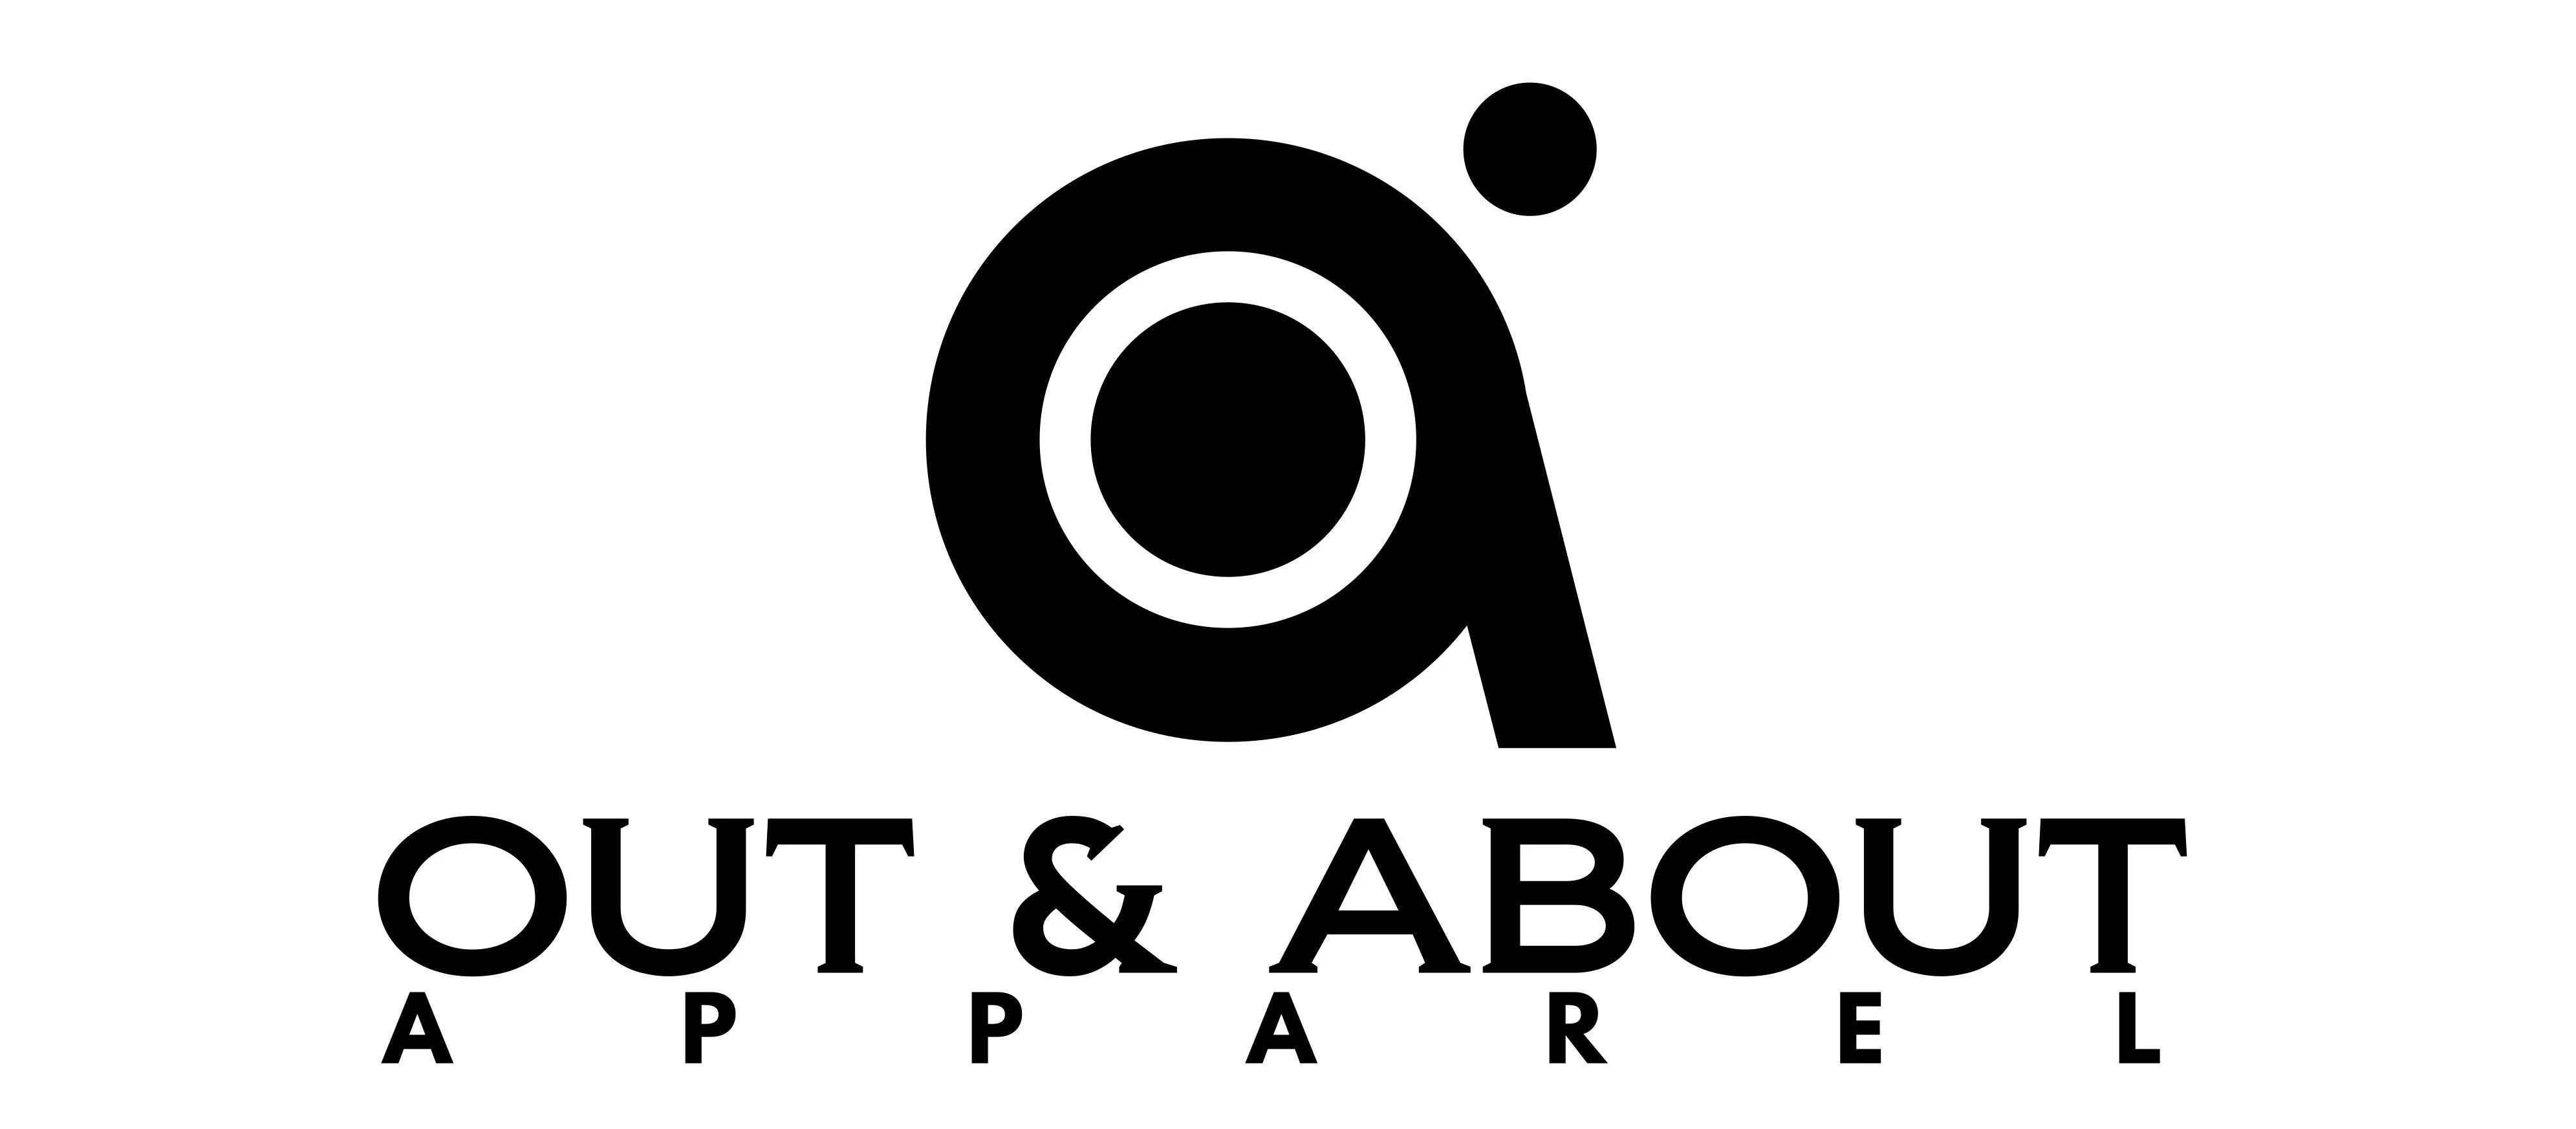 Out & About Apparel